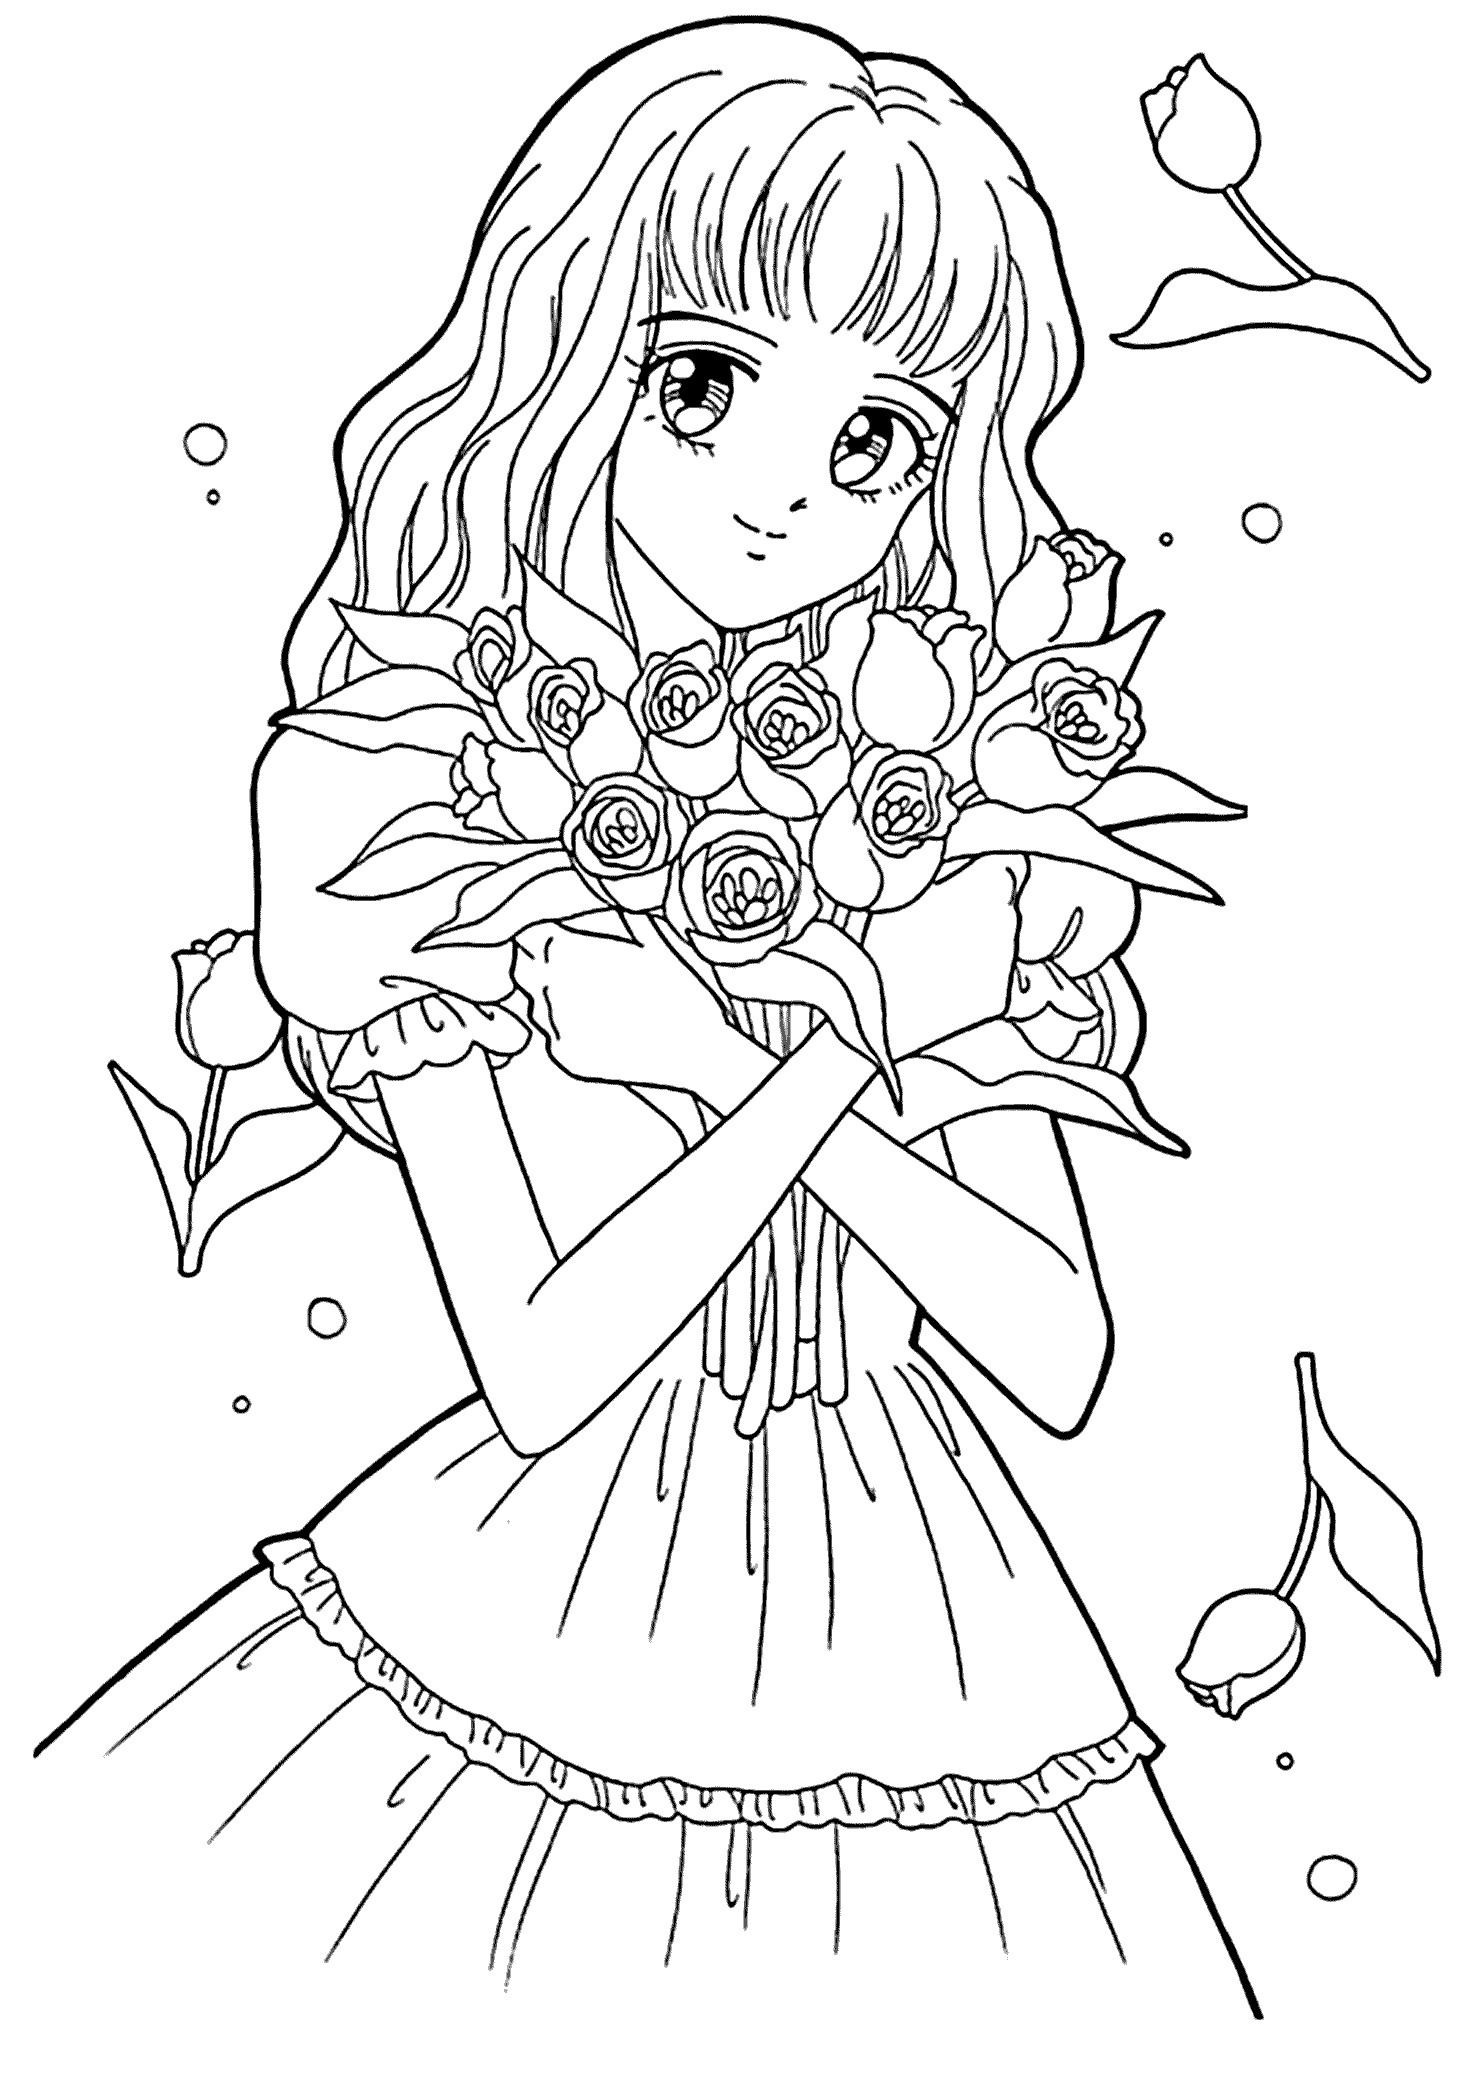 Cool Coloring Sheets Printable For Boys  Anime Christmas Coloring Pages Gallery